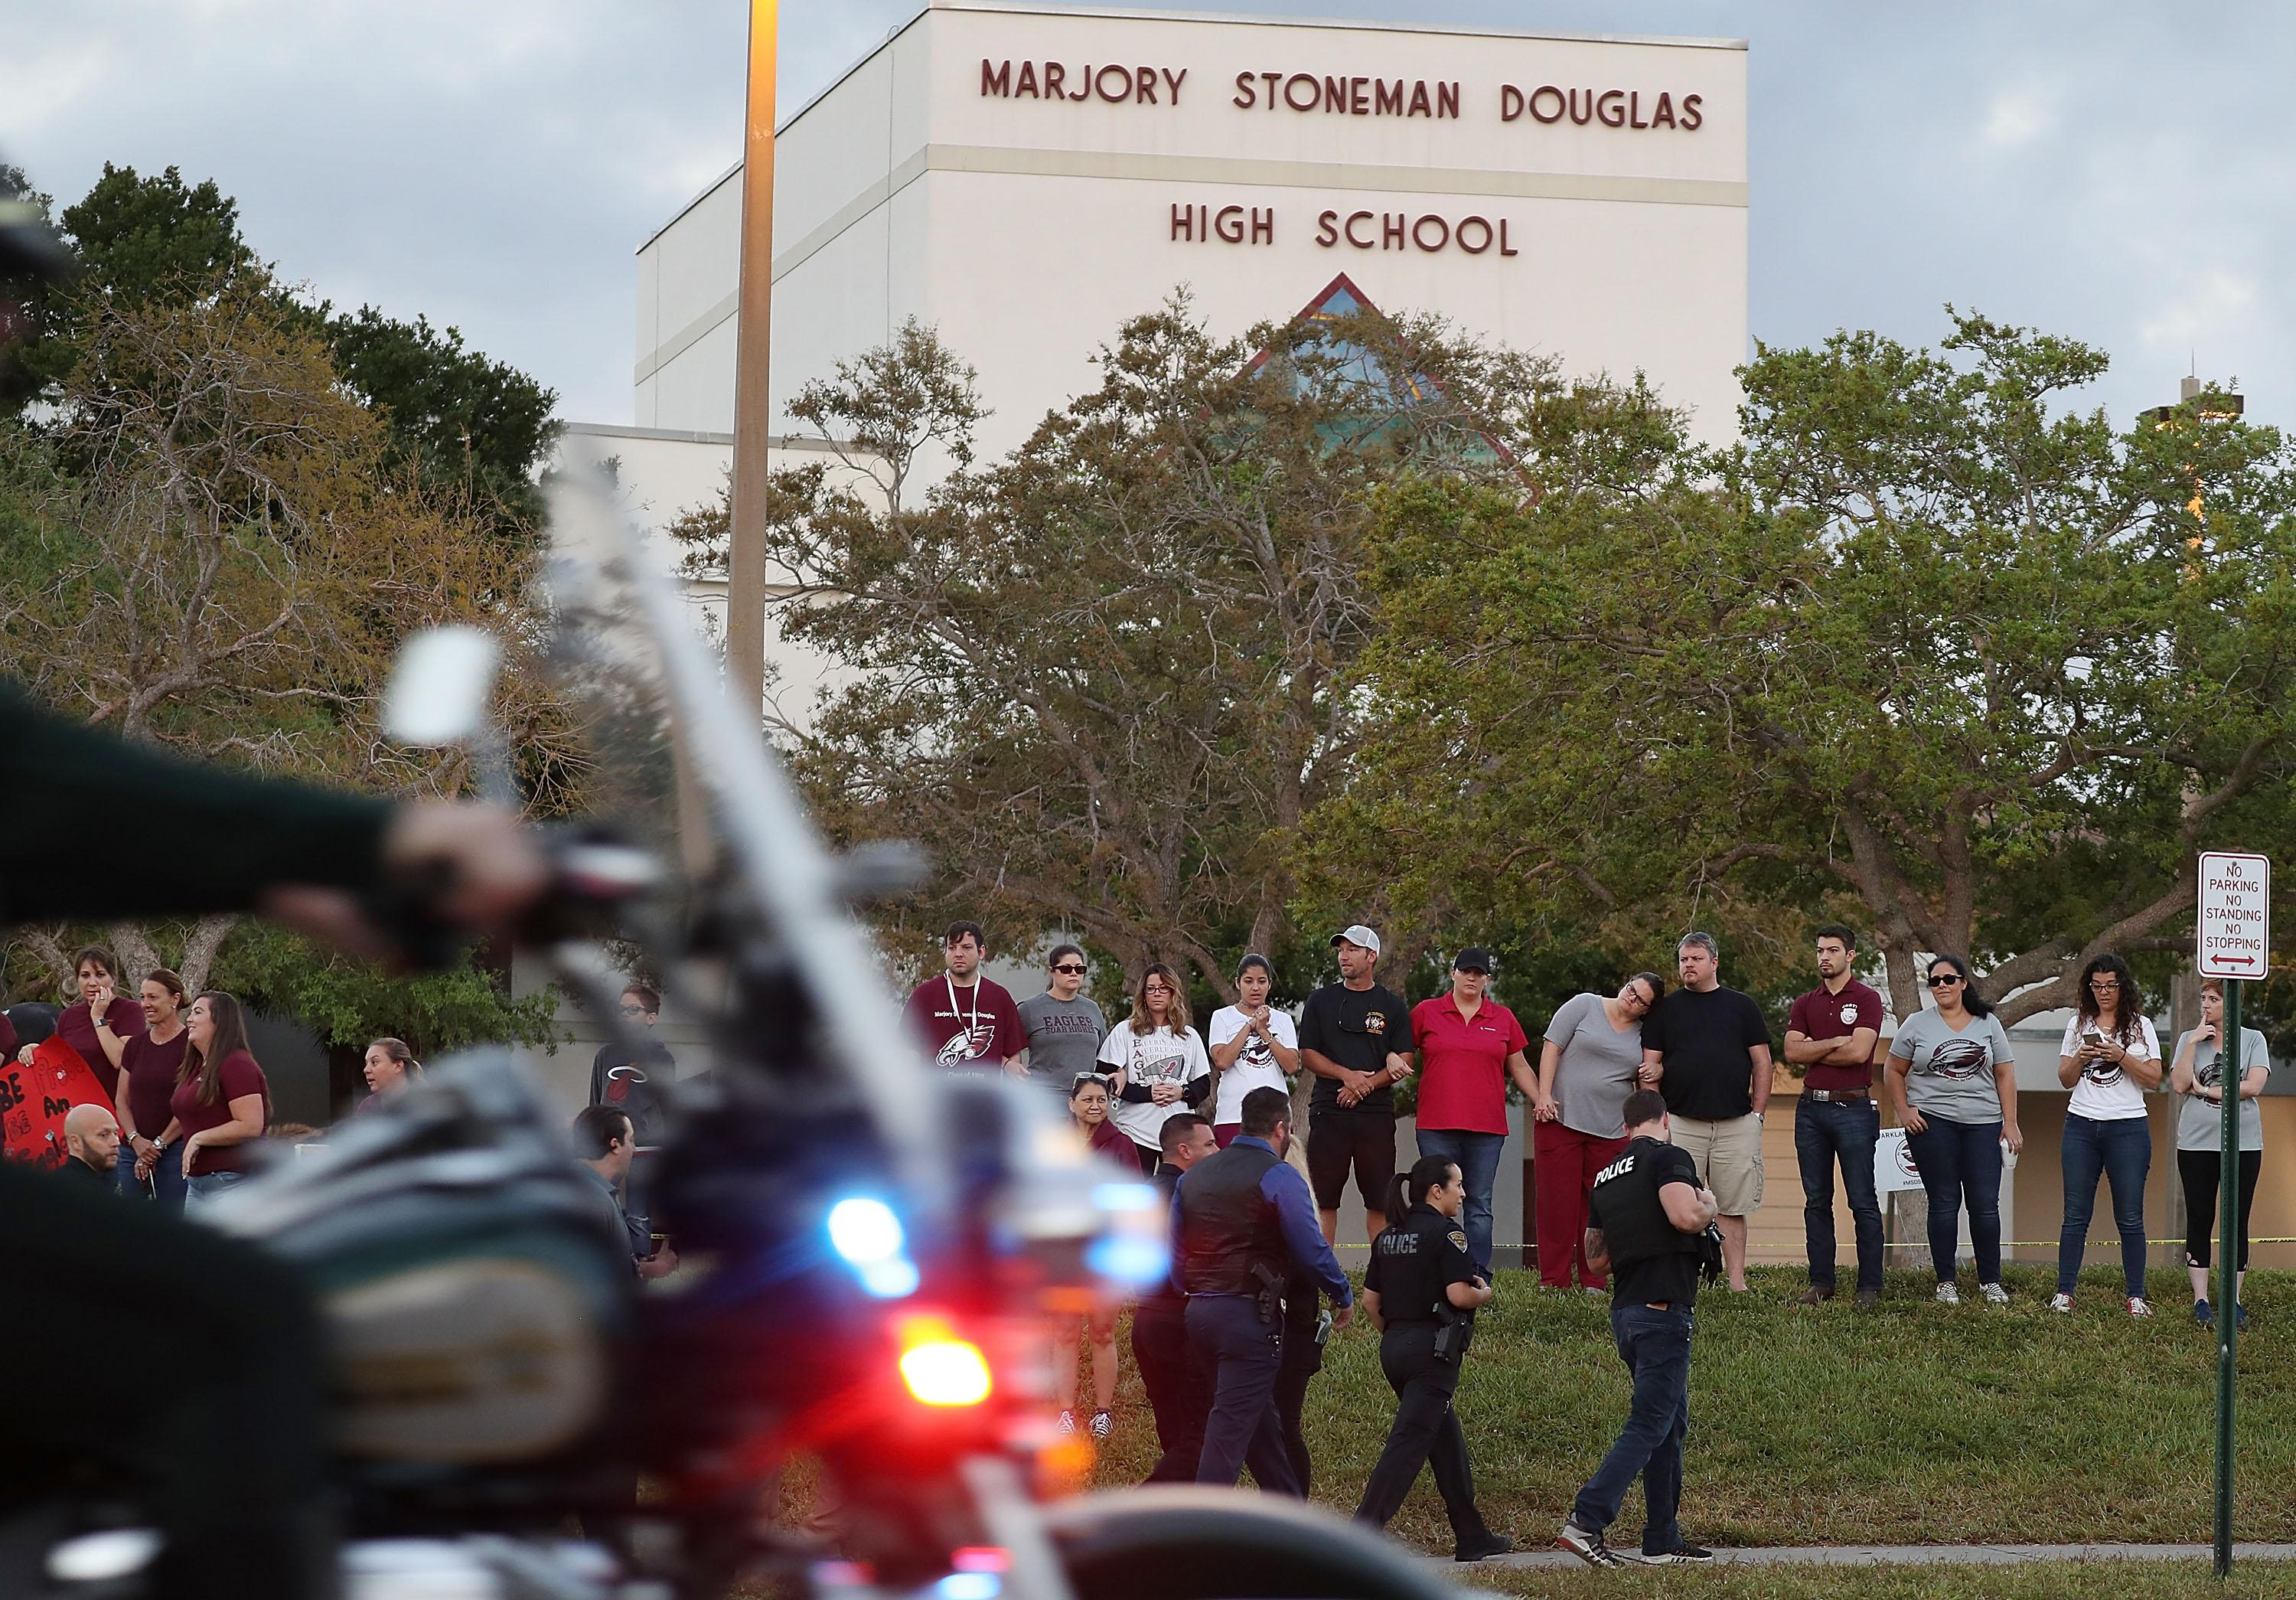 Marjory Stoneman Douglas High School as students arrive for the first time since the shooting to attend classes on February 28, 2018 in Parkland, Florida.